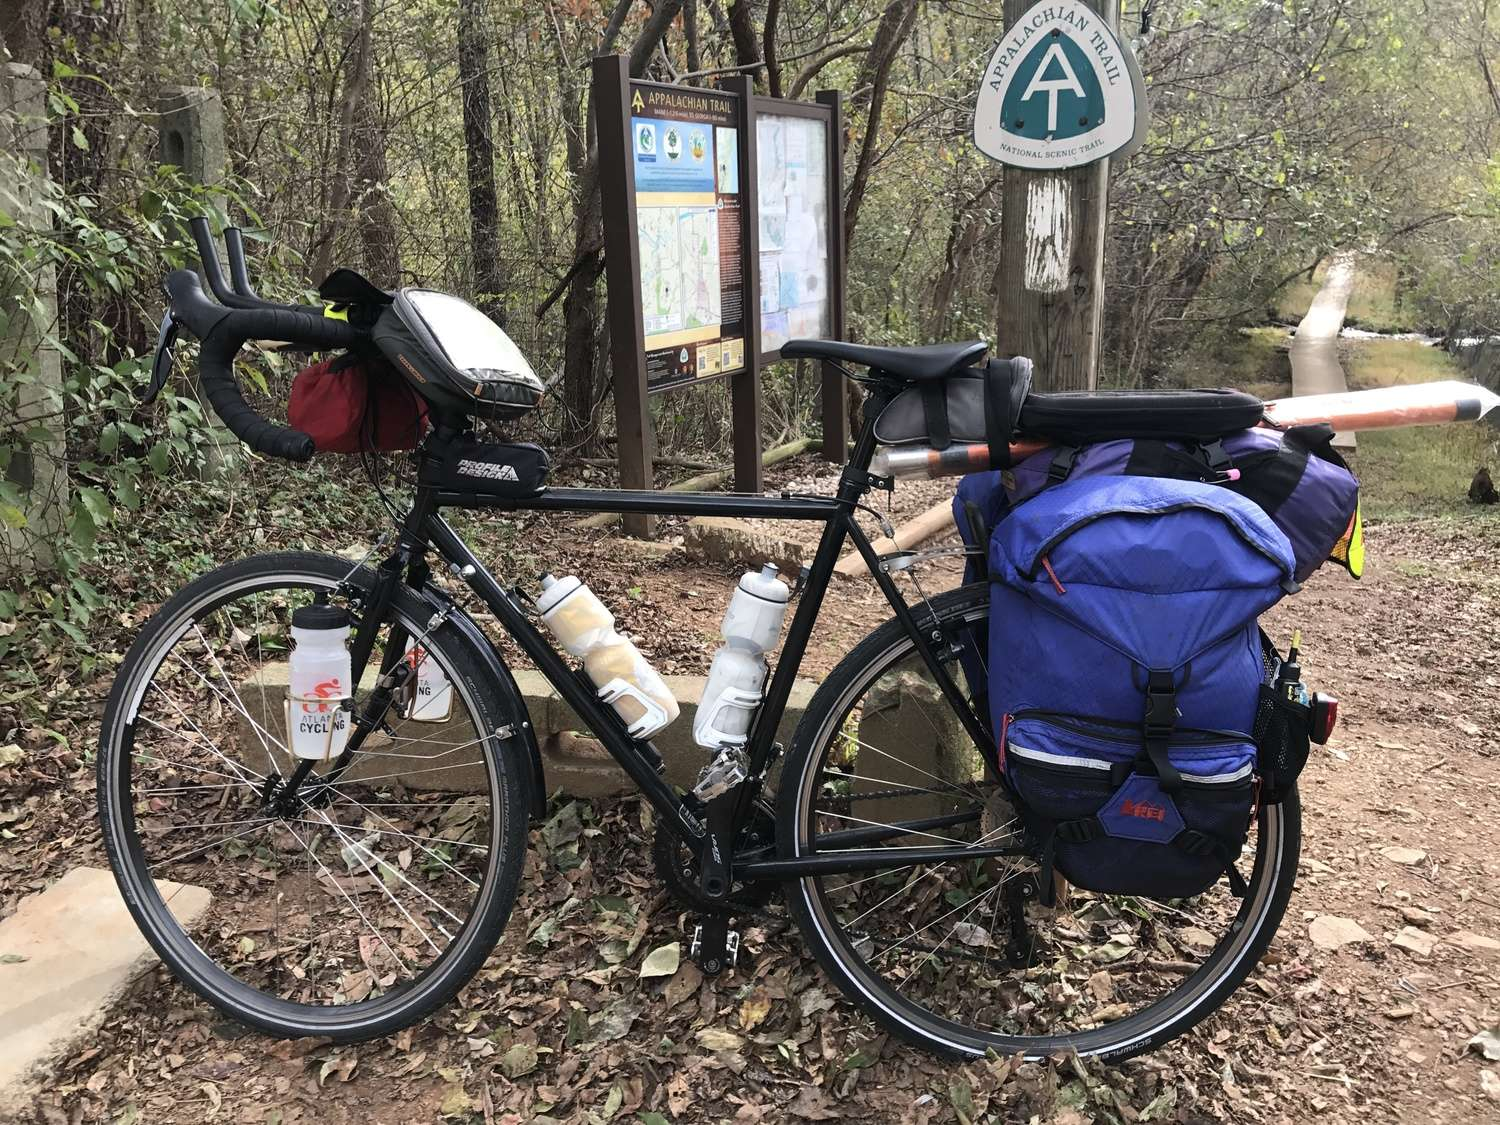 A stem bag can be designed for using paper maps, but also can store sunscreen, eyedrops, lip balm, or anything else you are likely to want close at hand.   Photo courtesy Brandon Lampley.